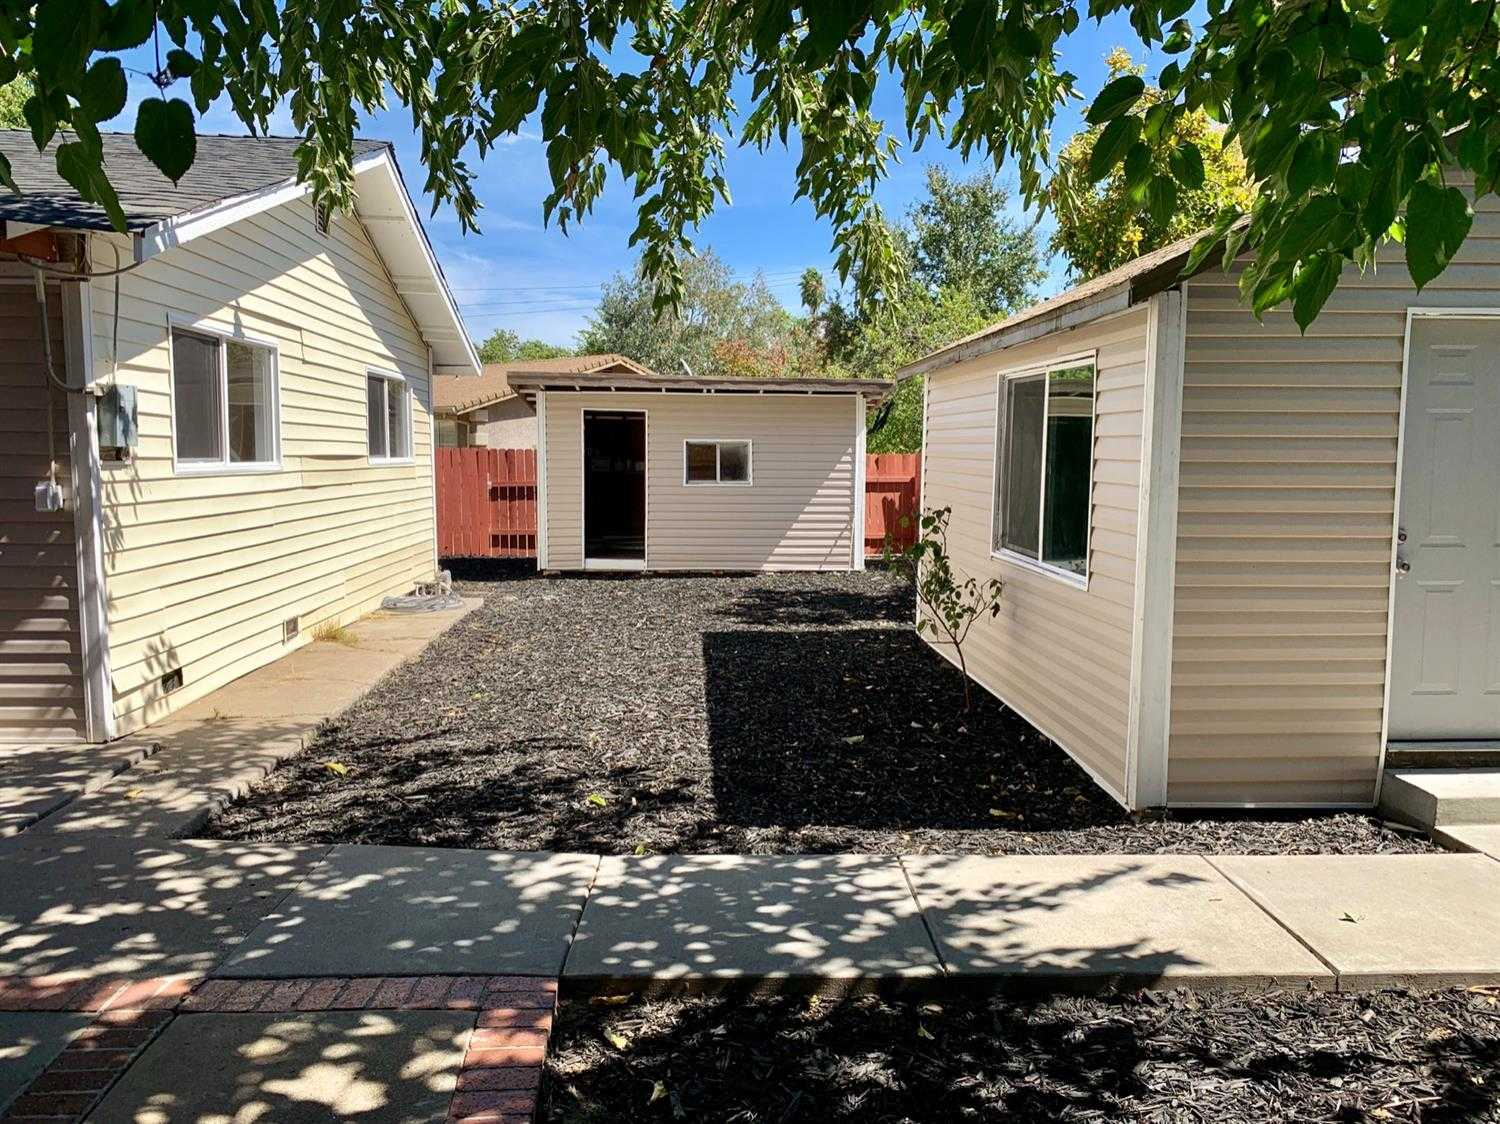 $339,900,000 - 4Br/2Ba -  for Sale in Sacramento